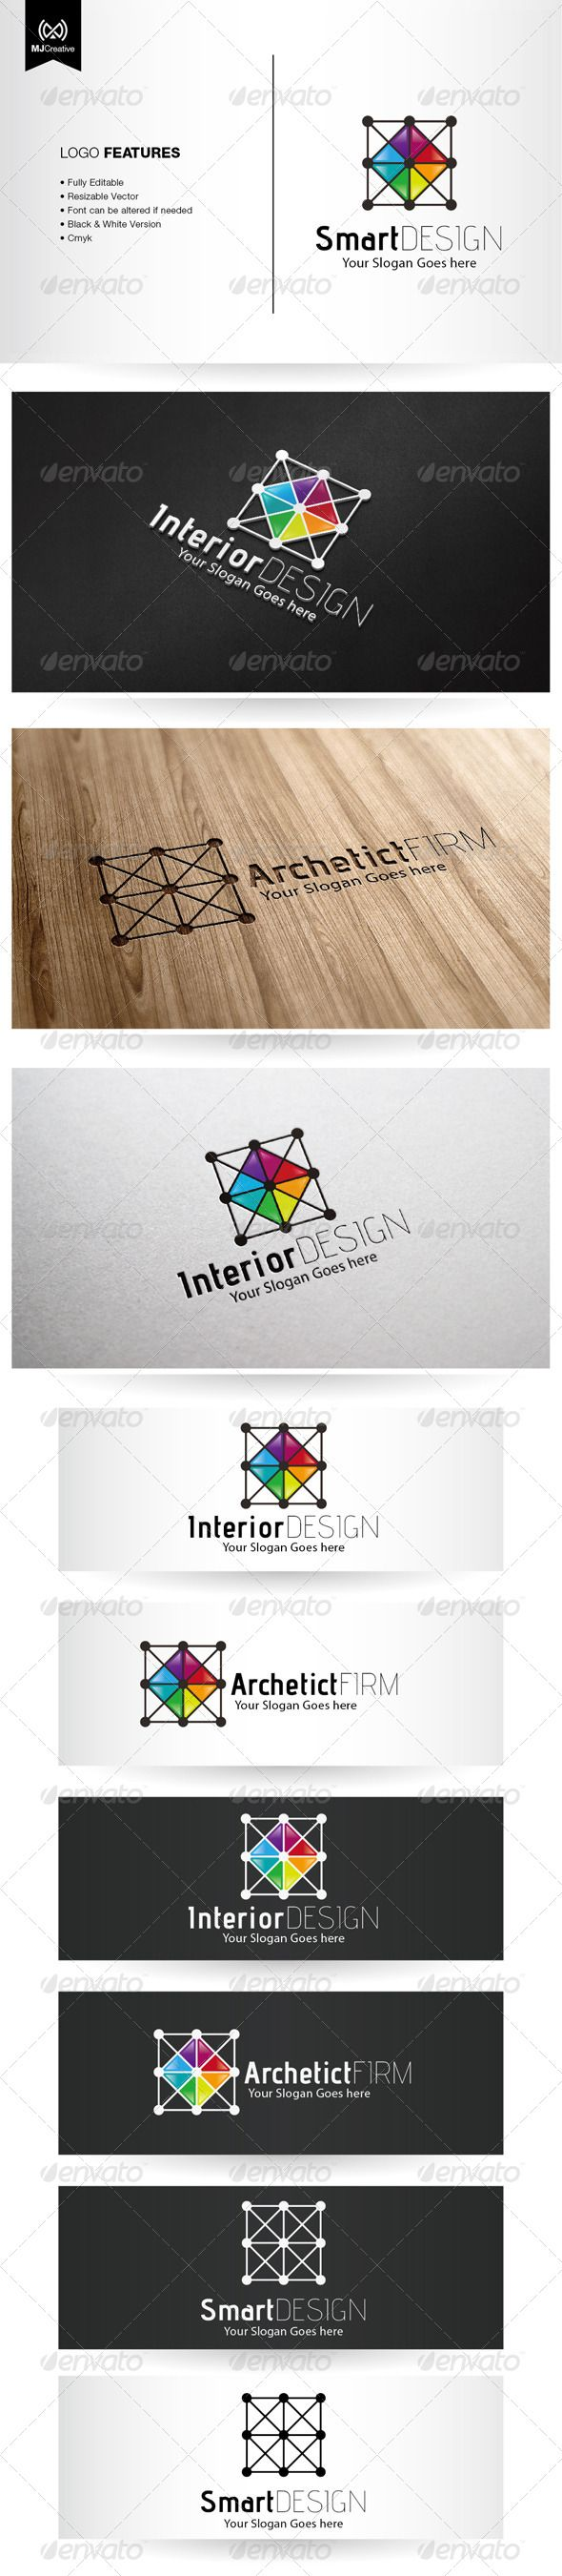 Architecture And Interior Design Logo #GraphicRiver Logo template suitable for Graphic works, Industrial design, technology related industry, apps and online activities, etc… The logo is vector format so you can re-sized without losing the quality. Included in the download • Ai File (cs3 or later) • EPS10 • Info Text Free fonts used in the design For any modification and editing assistance, please contact me and I'll be happy to help. Created: 30August13 GraphicsFilesIncluded: JPGImage…